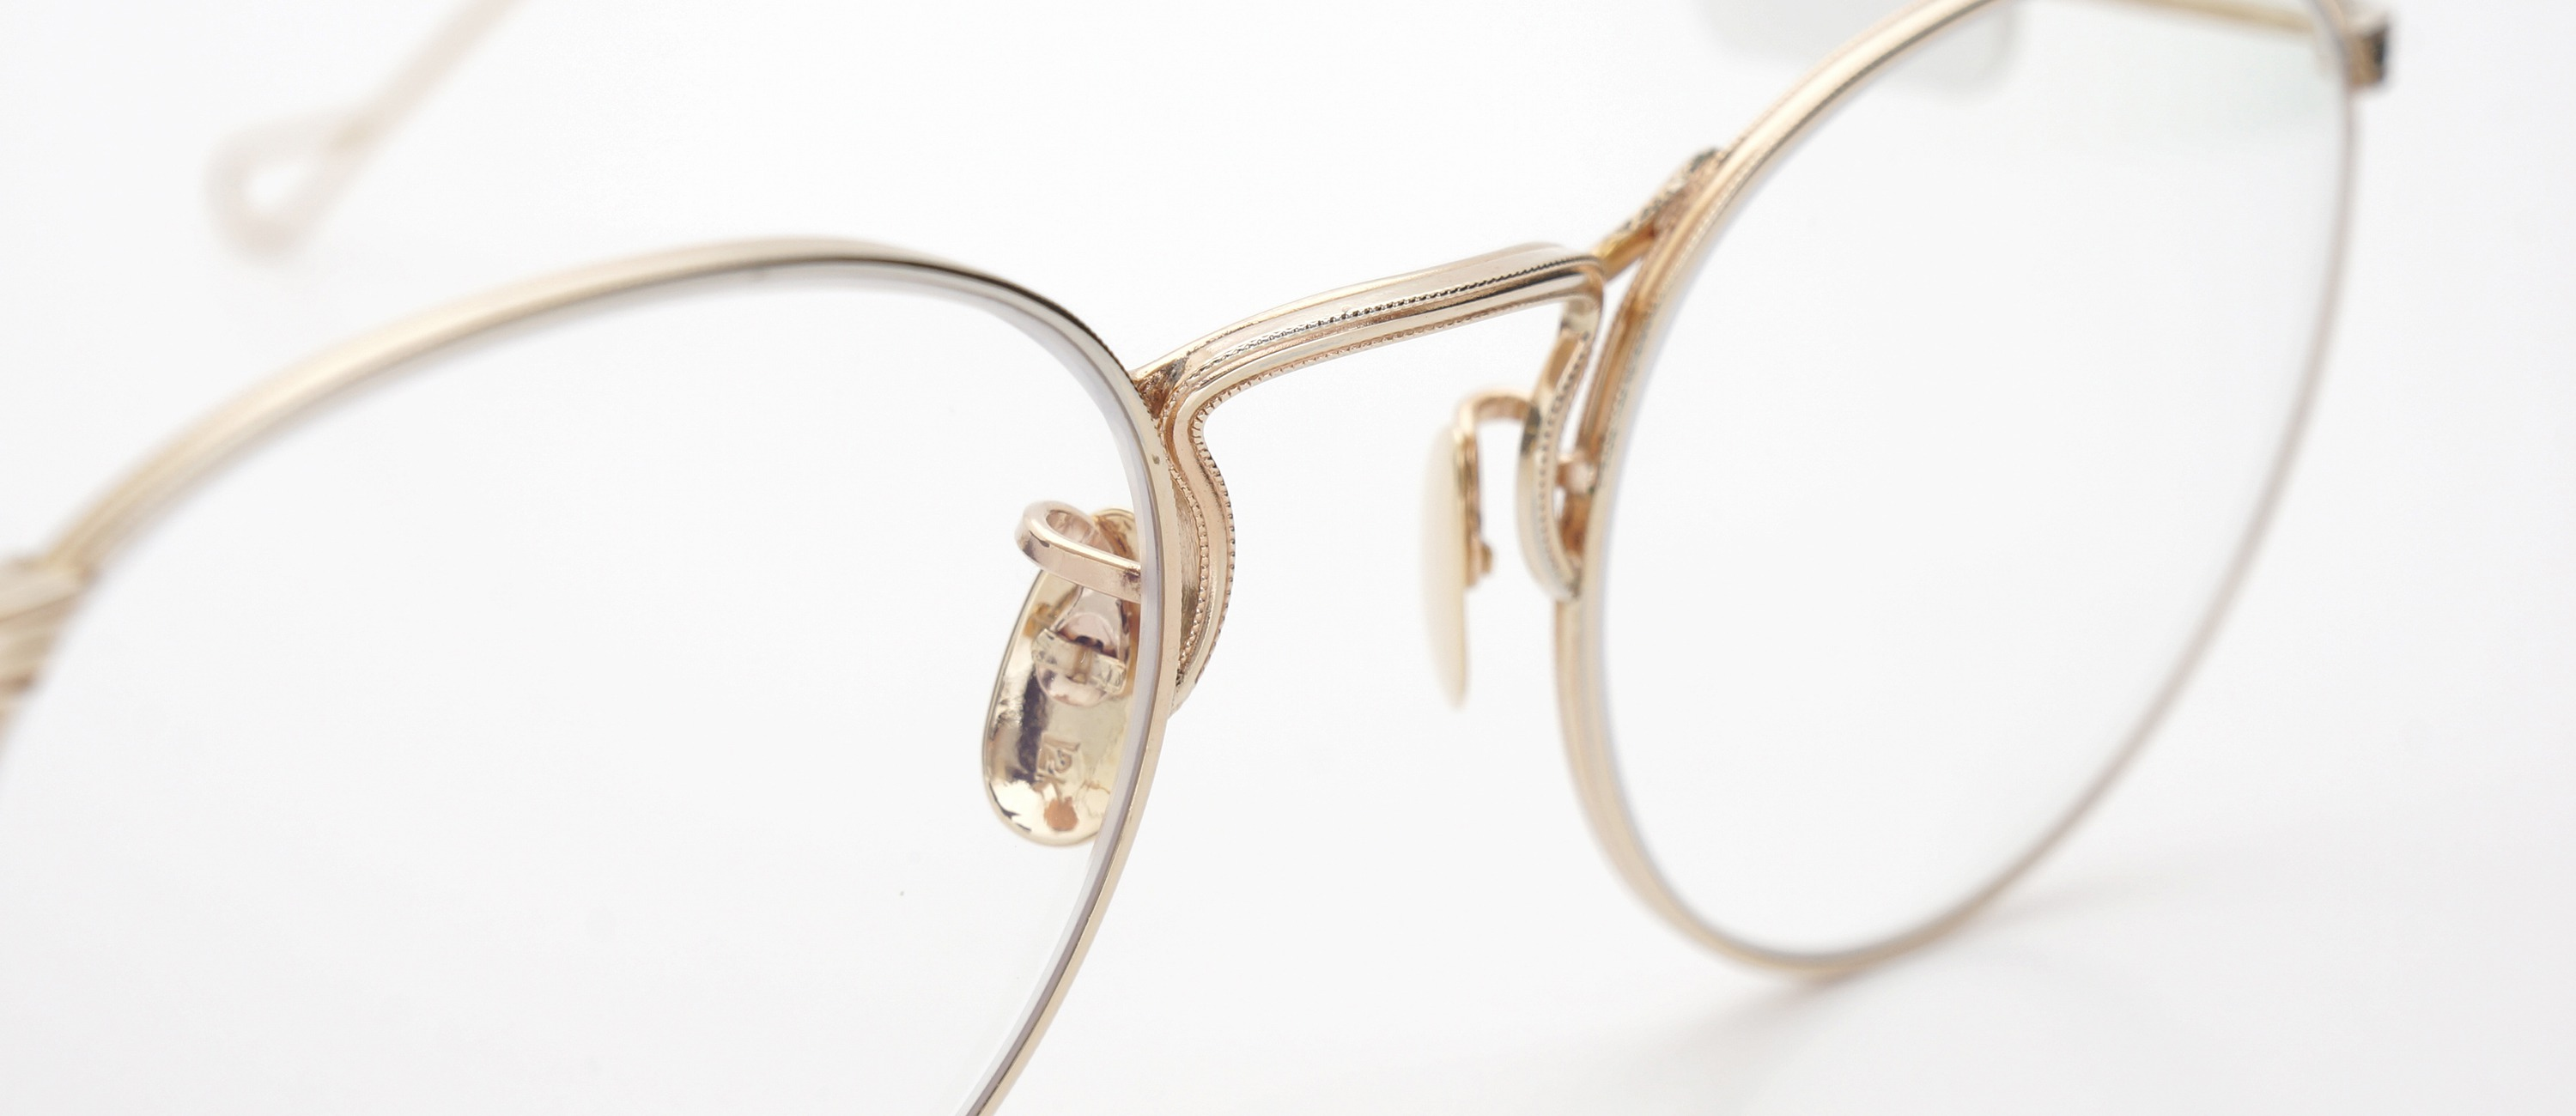 The Spectacle メガネ 1930s-40s  American Optical Full-Frame Ful-Vue P-5 YG 46-22 イメージ7